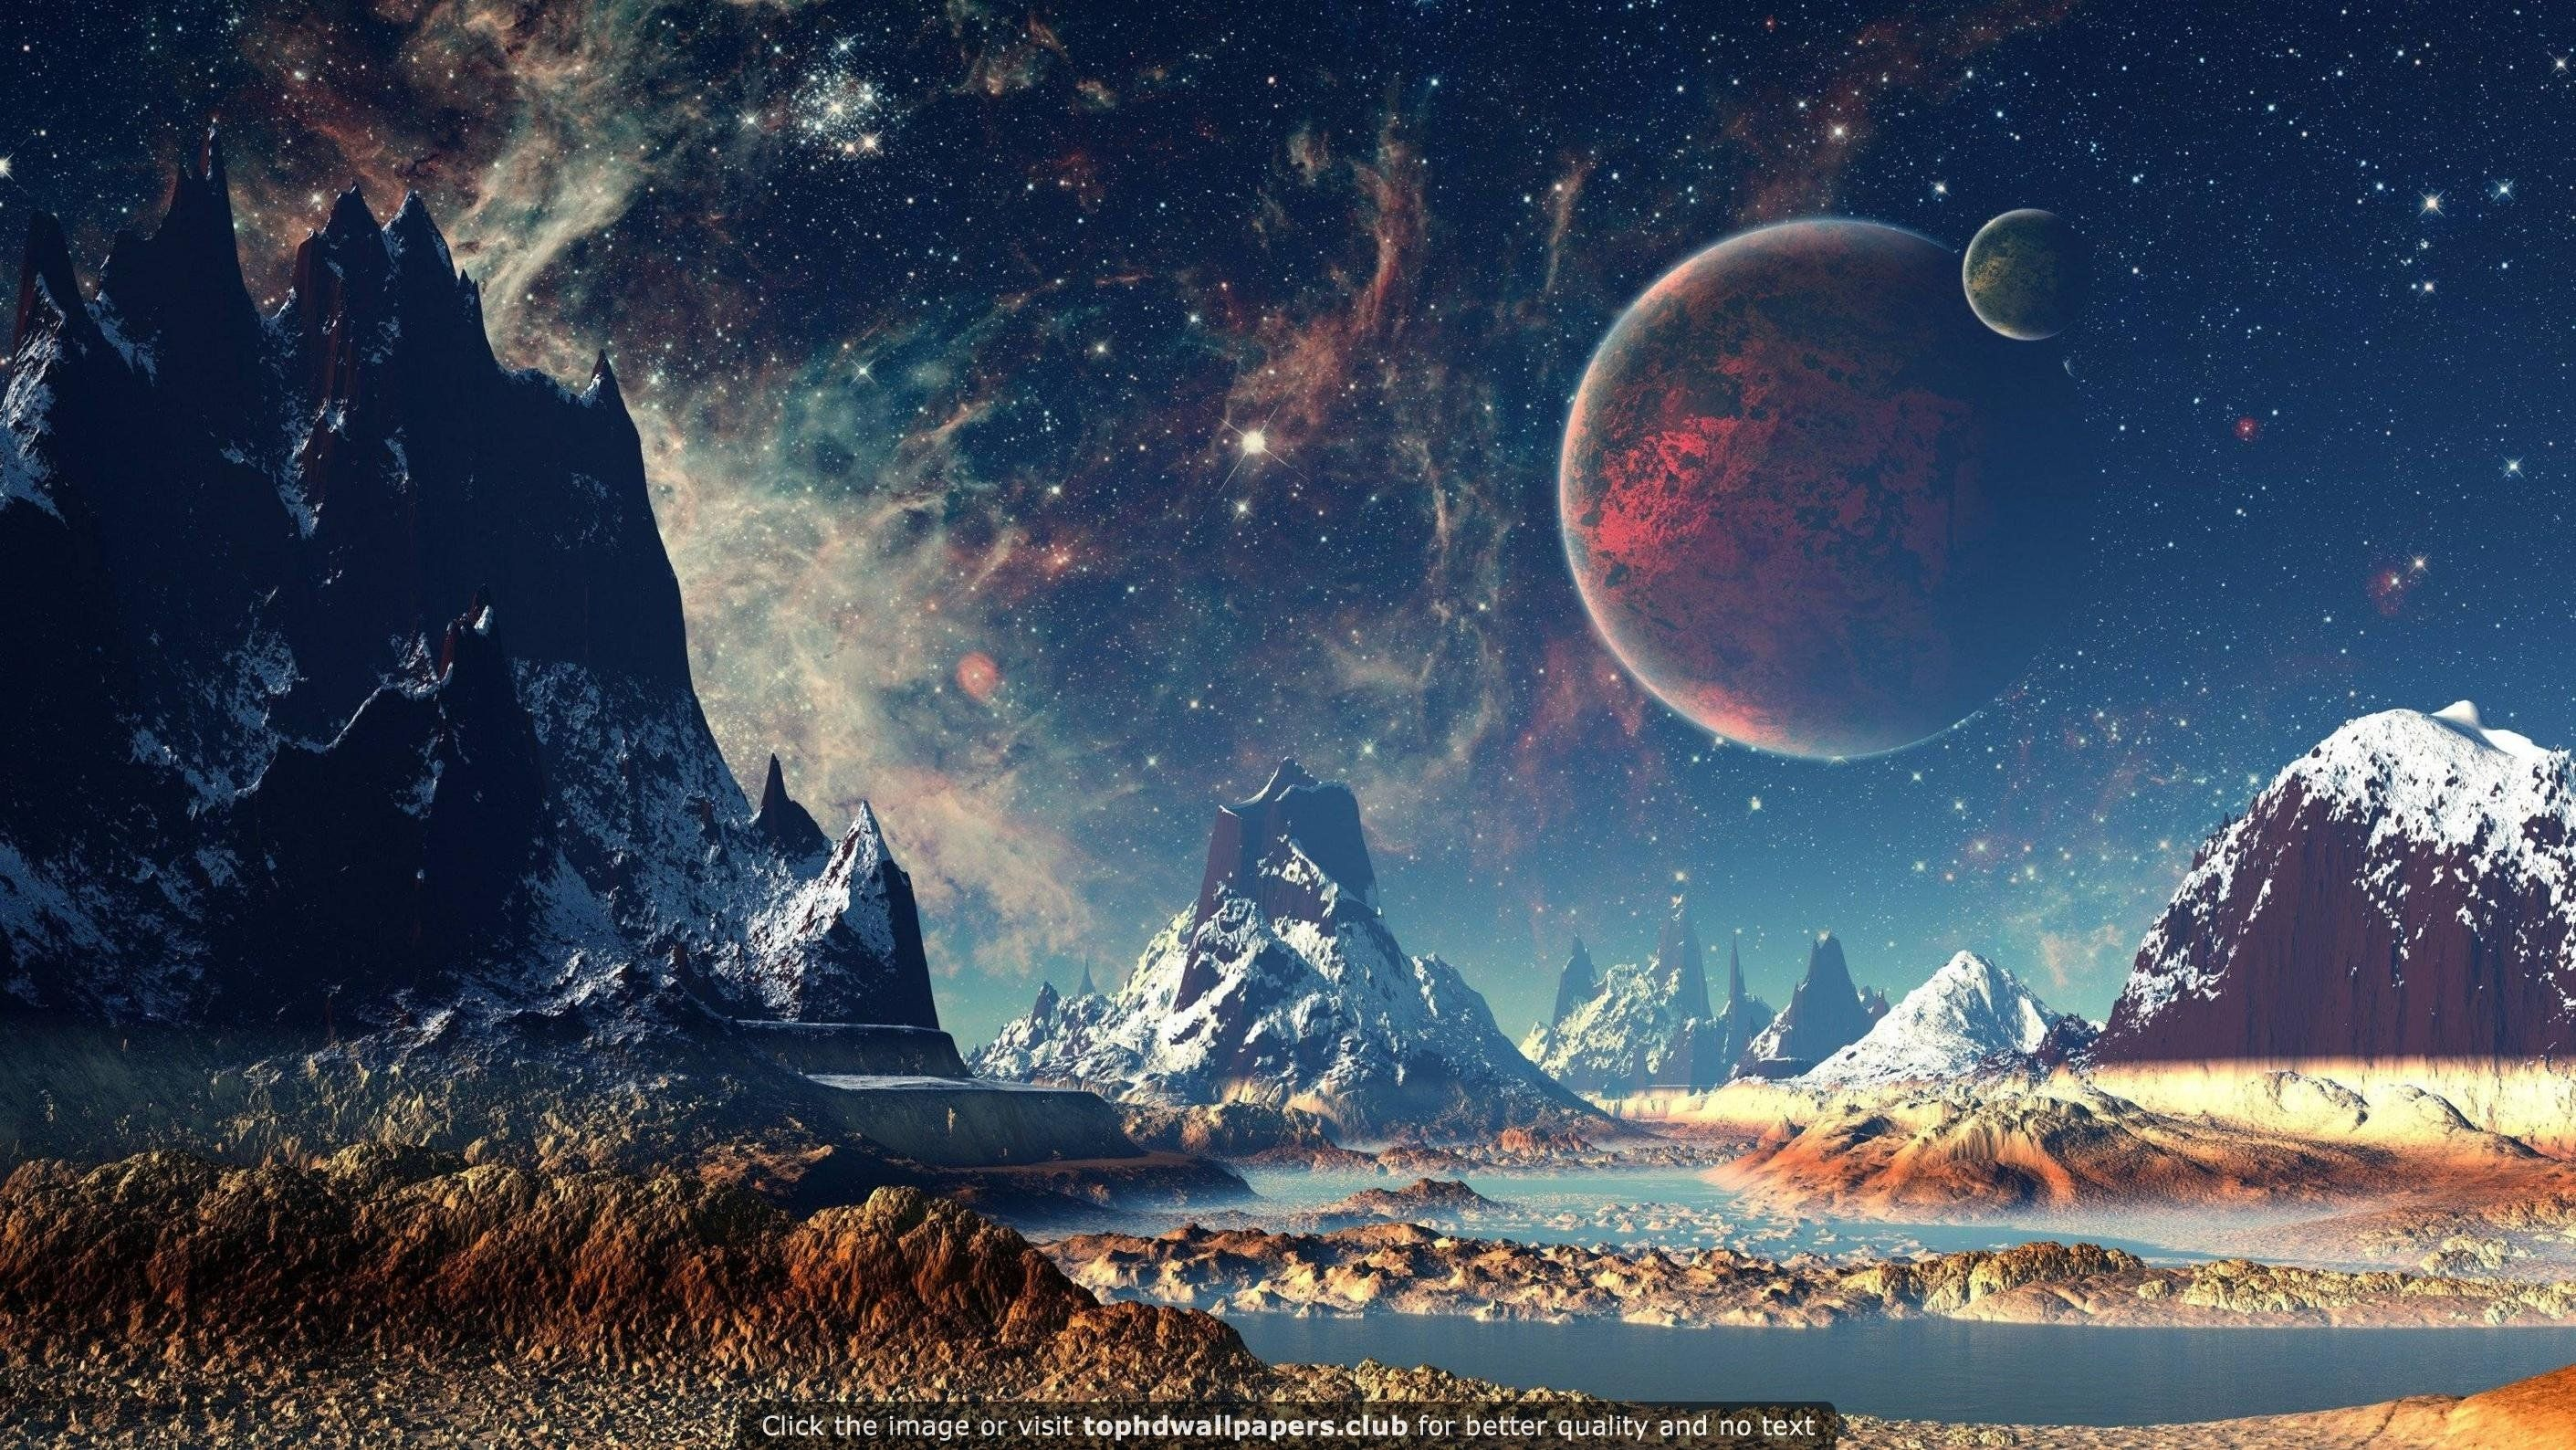 Another World 4K Or HD Wallpaper For Your PC, Mac Or